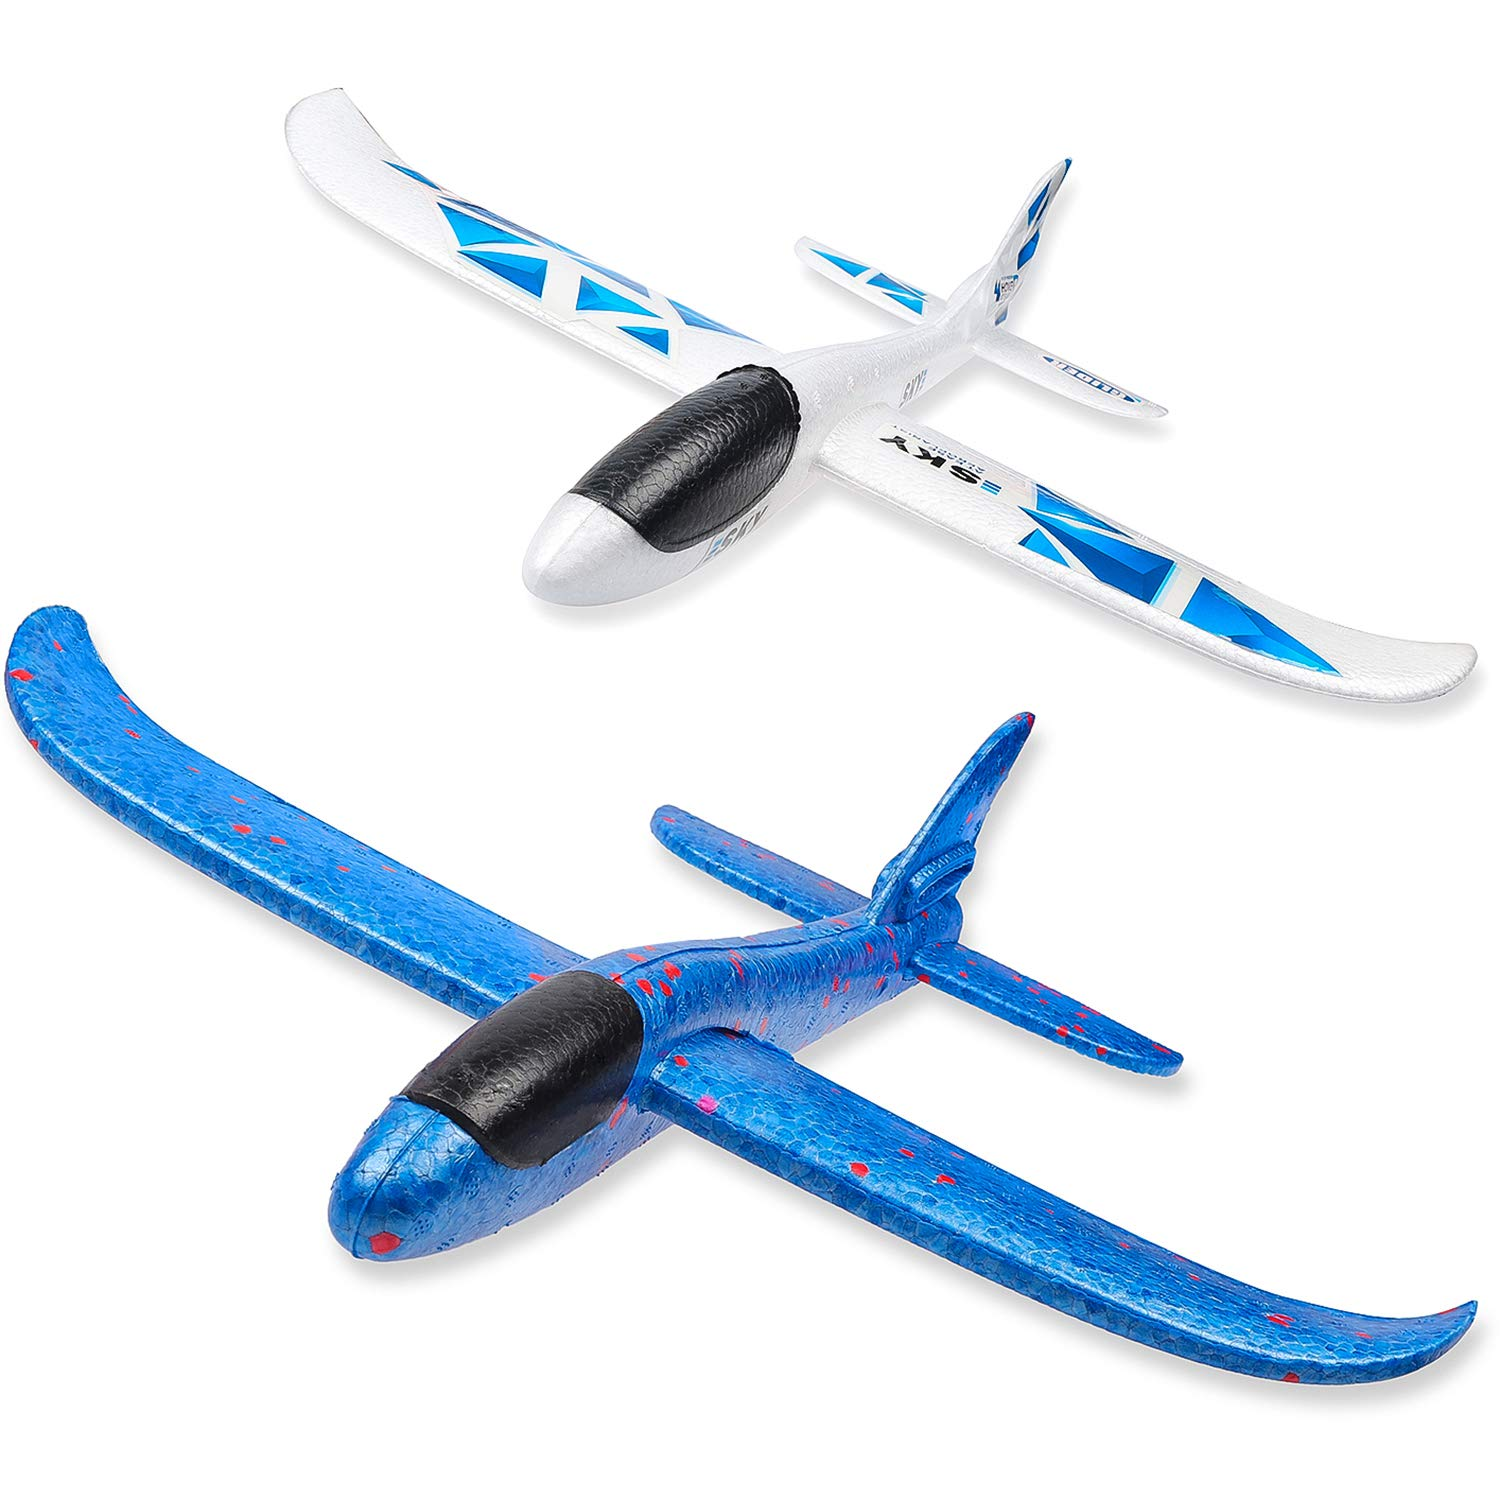 WATINC 2Pcs 17in Airplane, Manual Throwing, Fun, challenging, Outdoor Sports Toy, Model Foam Airplane, Blue & White Airplane (WT-Foam Airplane 2Pcs) by WATINC